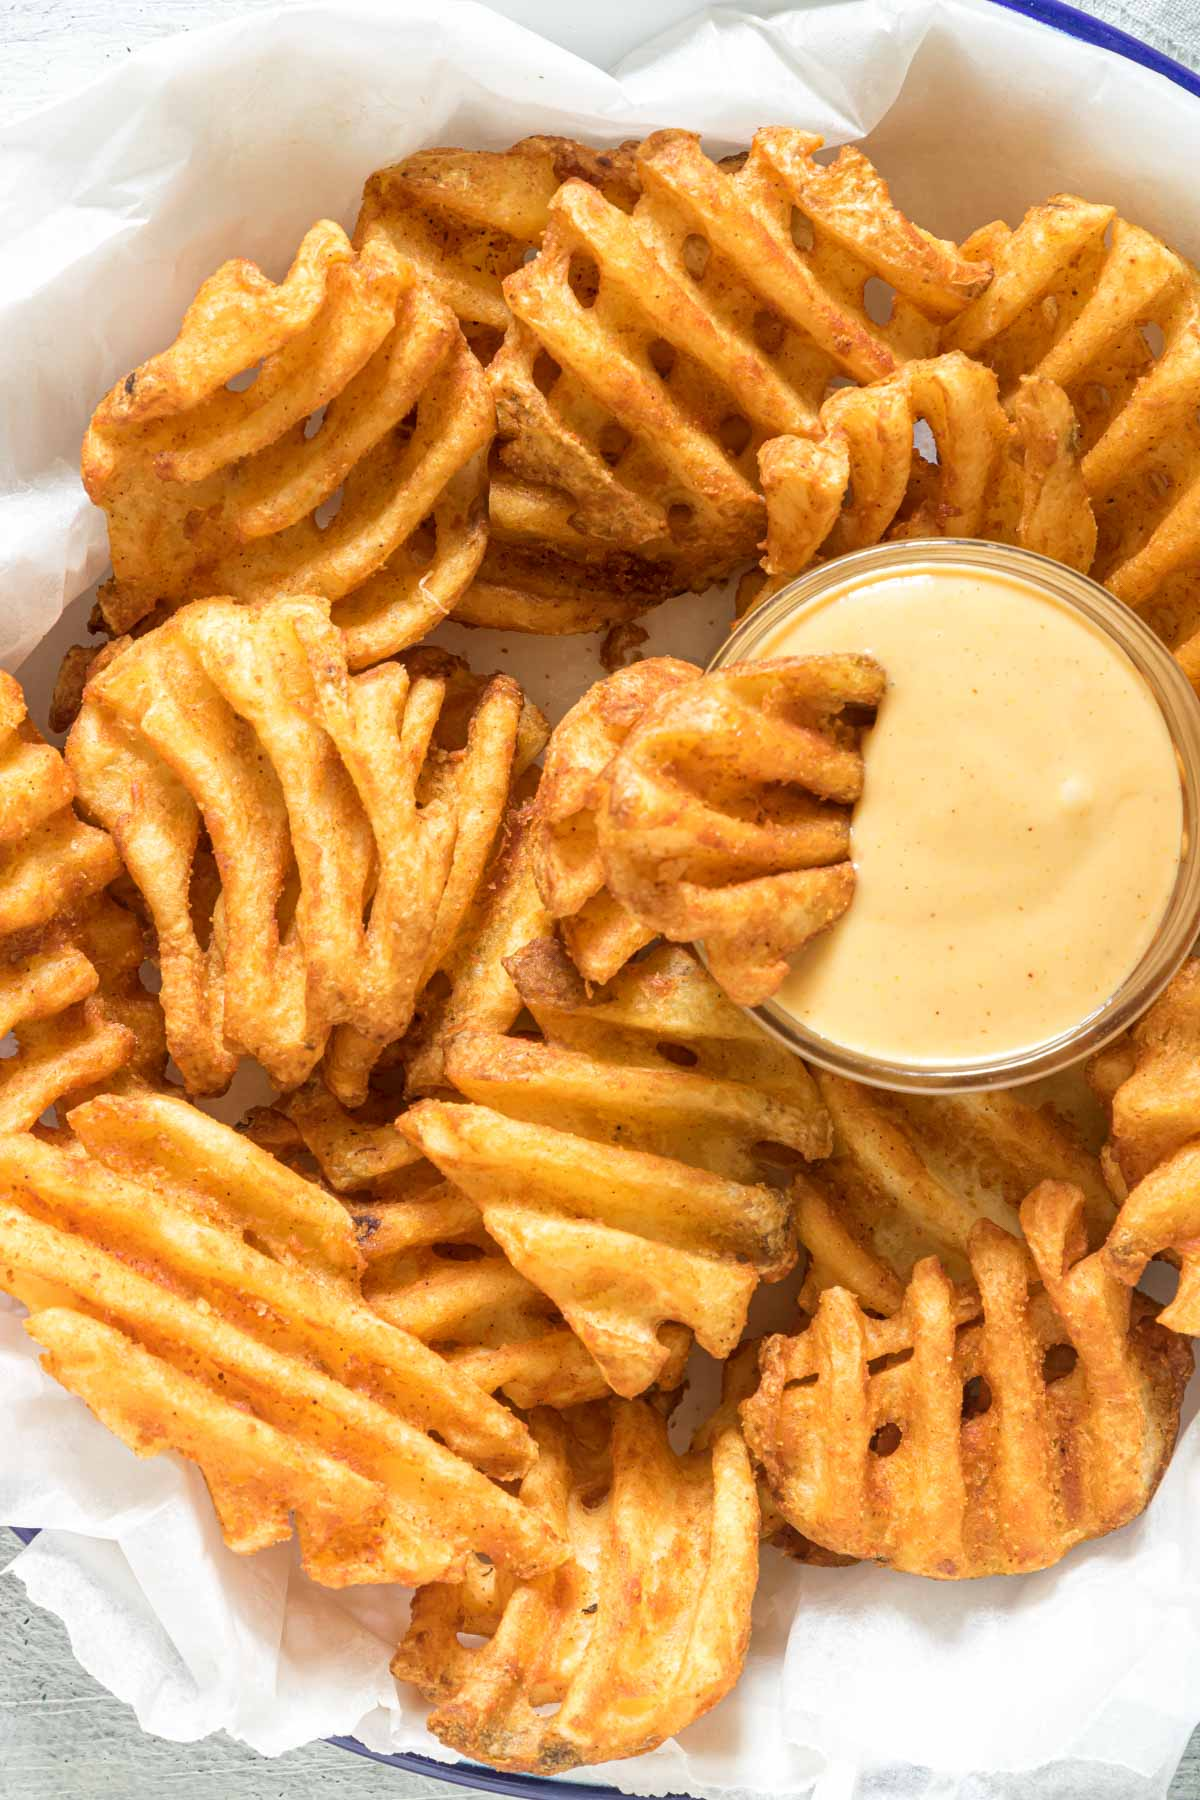 close up view o a serving of waffle fries and a dish of chick fil a sauce